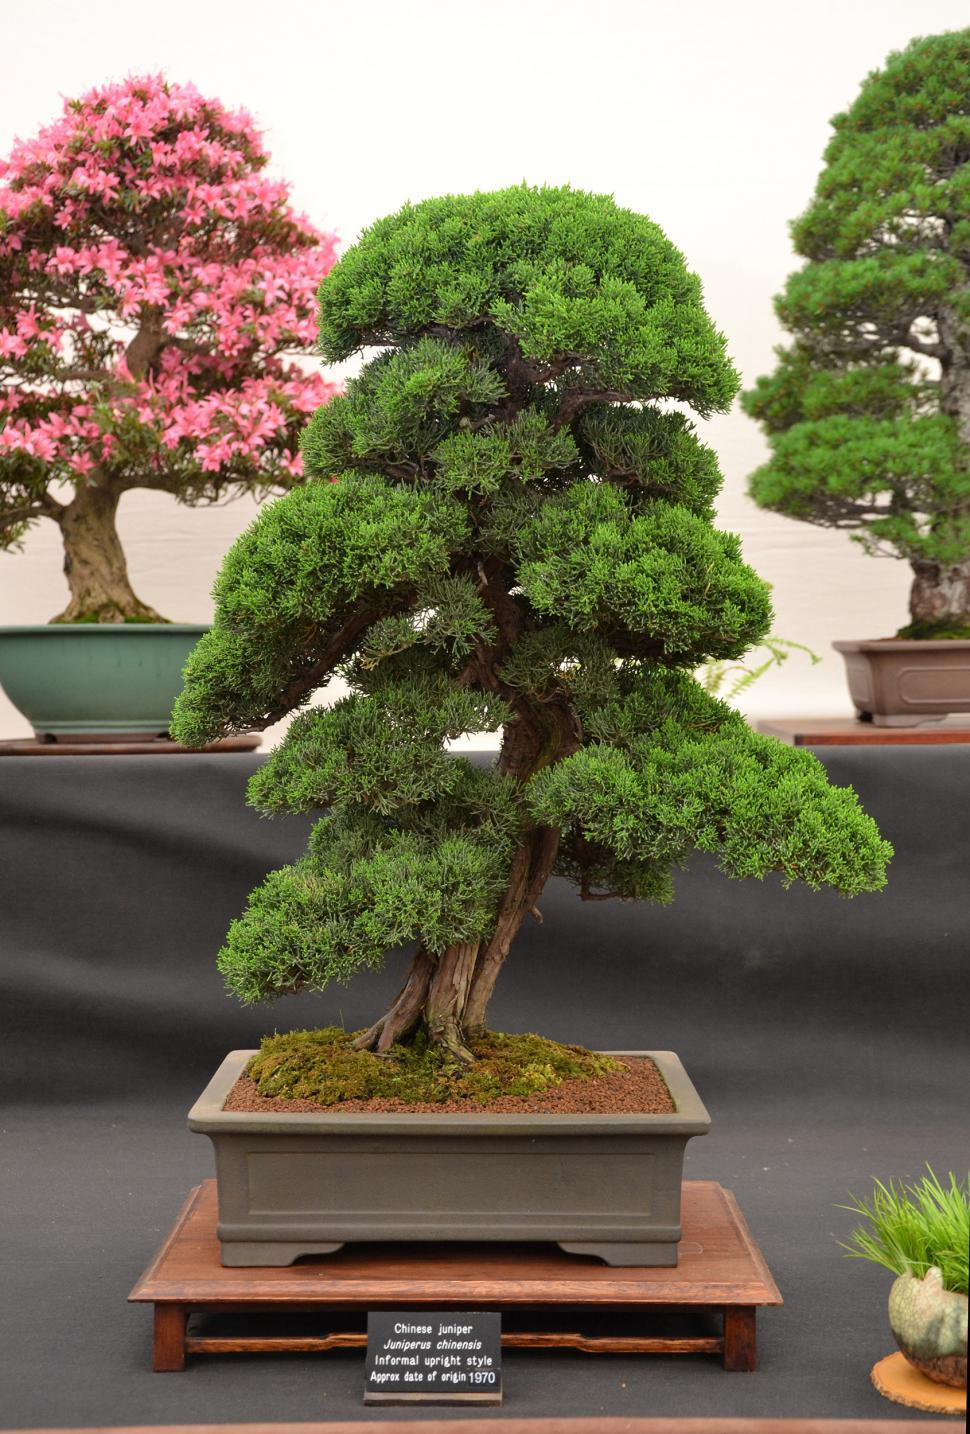 Download Free Stock Photo of Chinese juniper bonsai